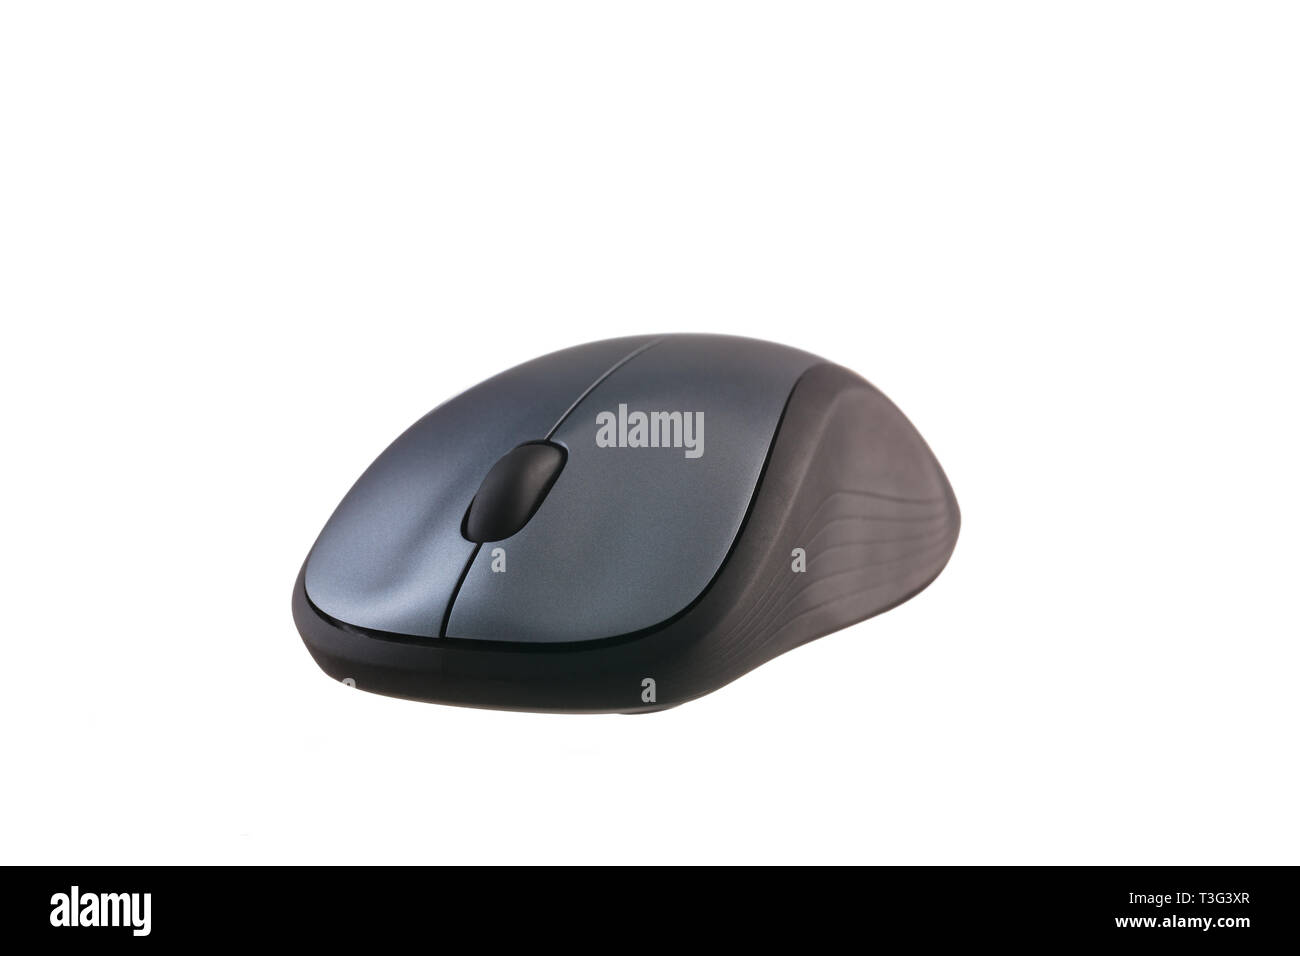 e10ef668bfd Wireless computer mouse isolated on white background Stock Photo ...